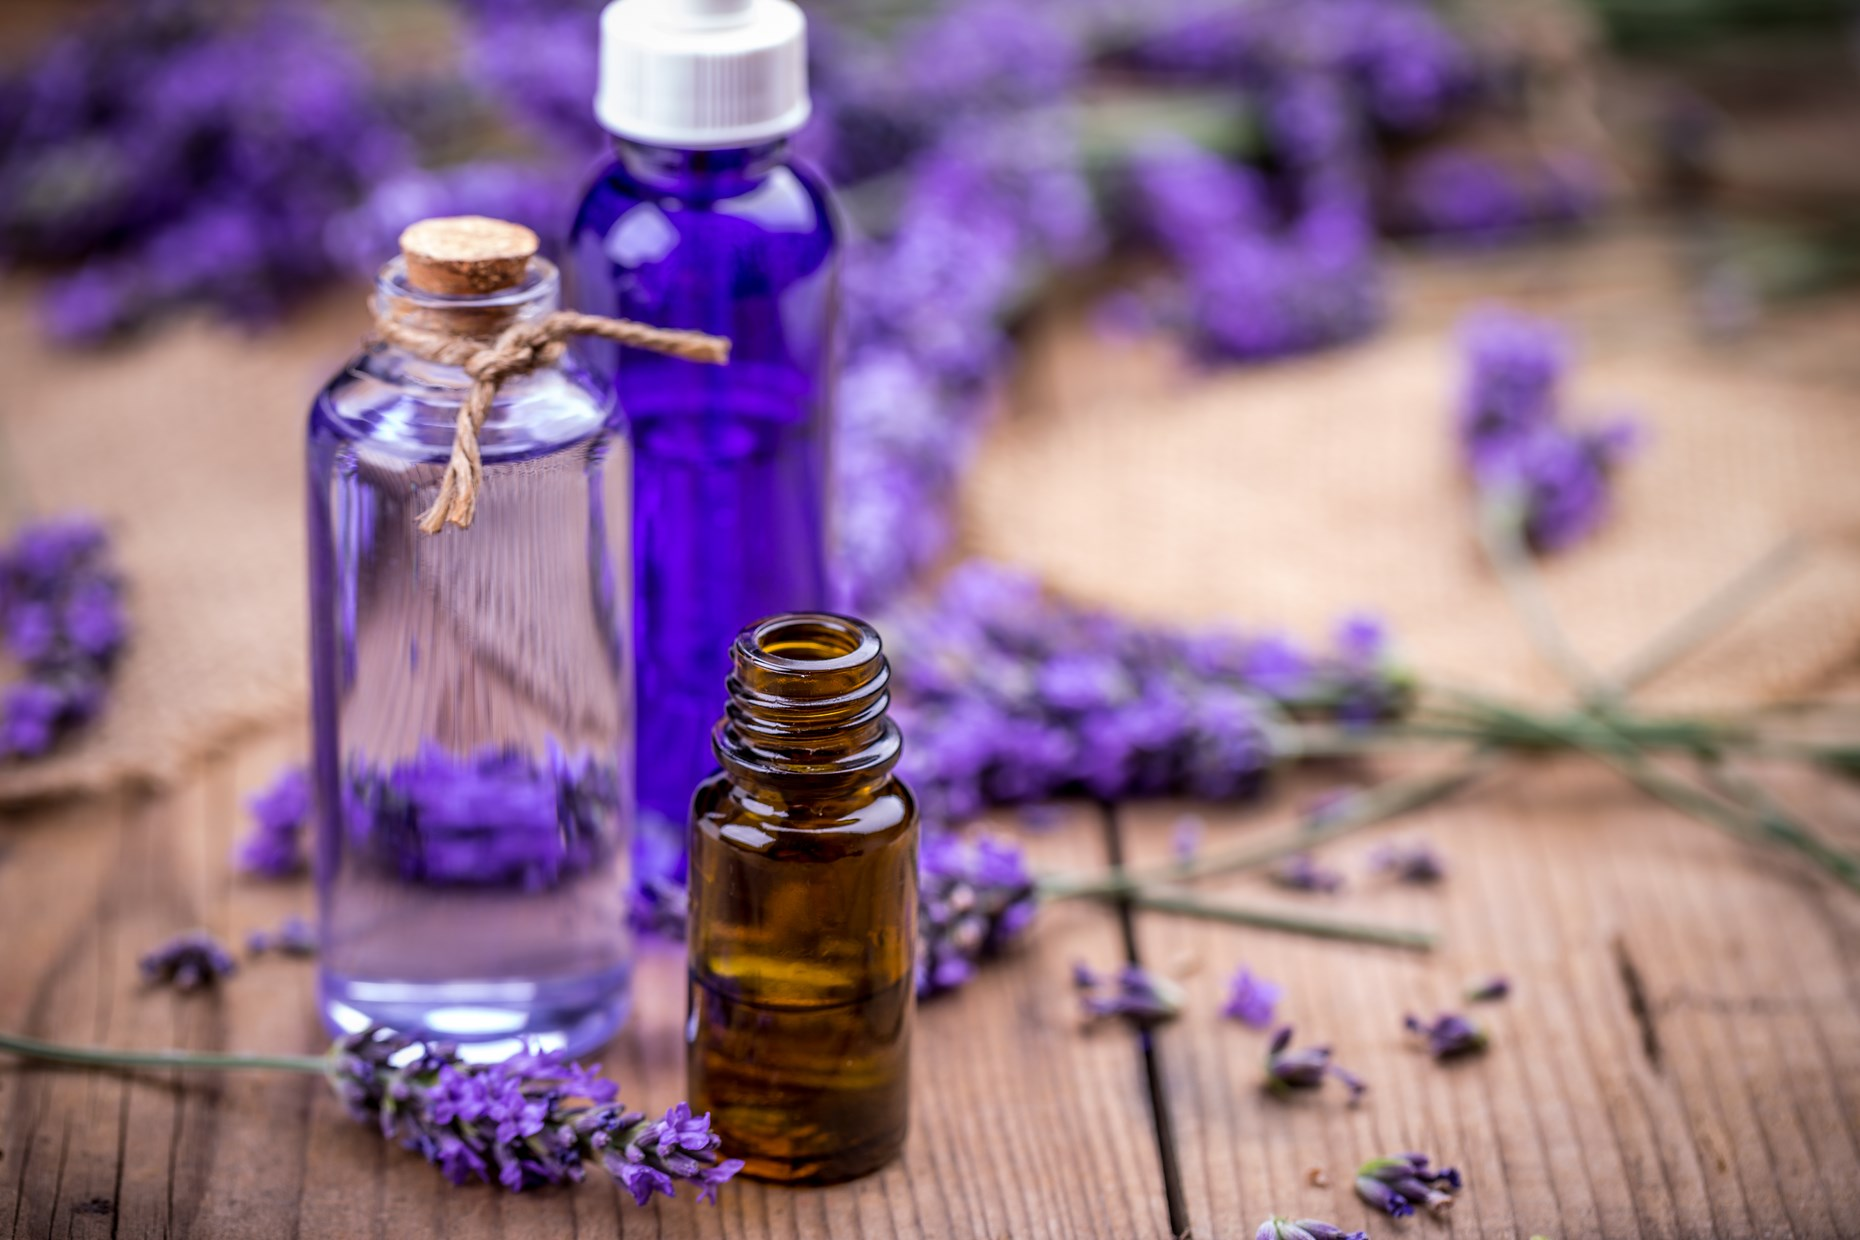 Bottles of essential oil and fresh lavender flowers